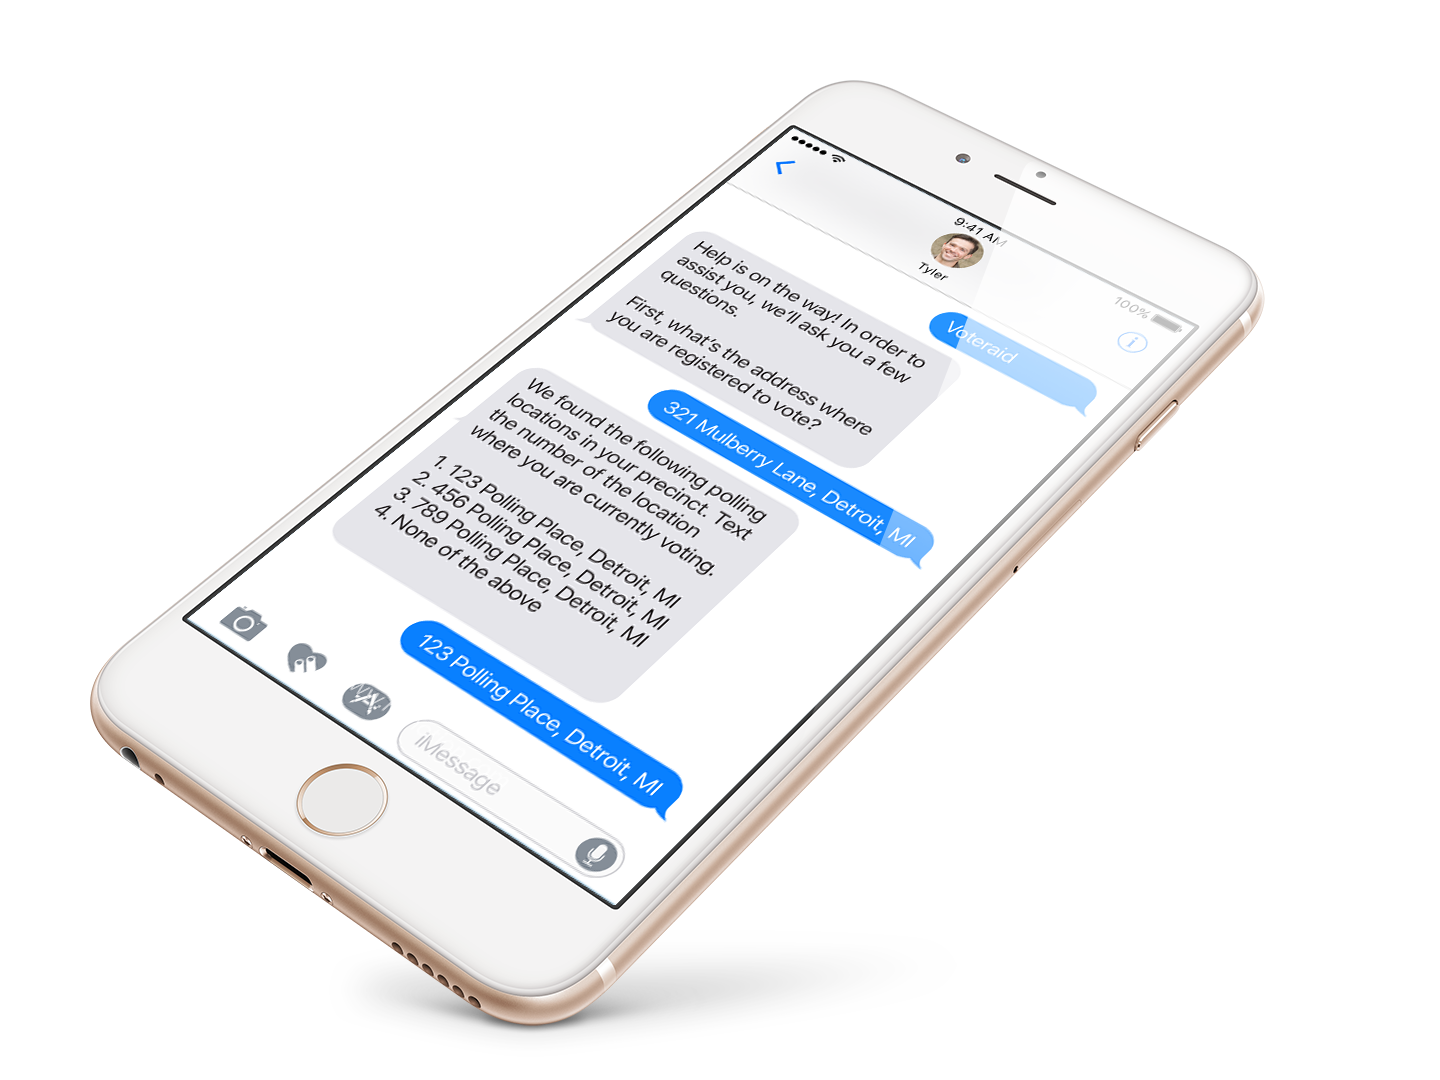 My Role - PRODUCT DESIGNERPlatforms: SMS, Facebook MessengerMy responsibilities for this project included researching the problem space, concept ideation, copywriting, fact-checking the laws with expert volunteers, designing user flows, and prototyping.